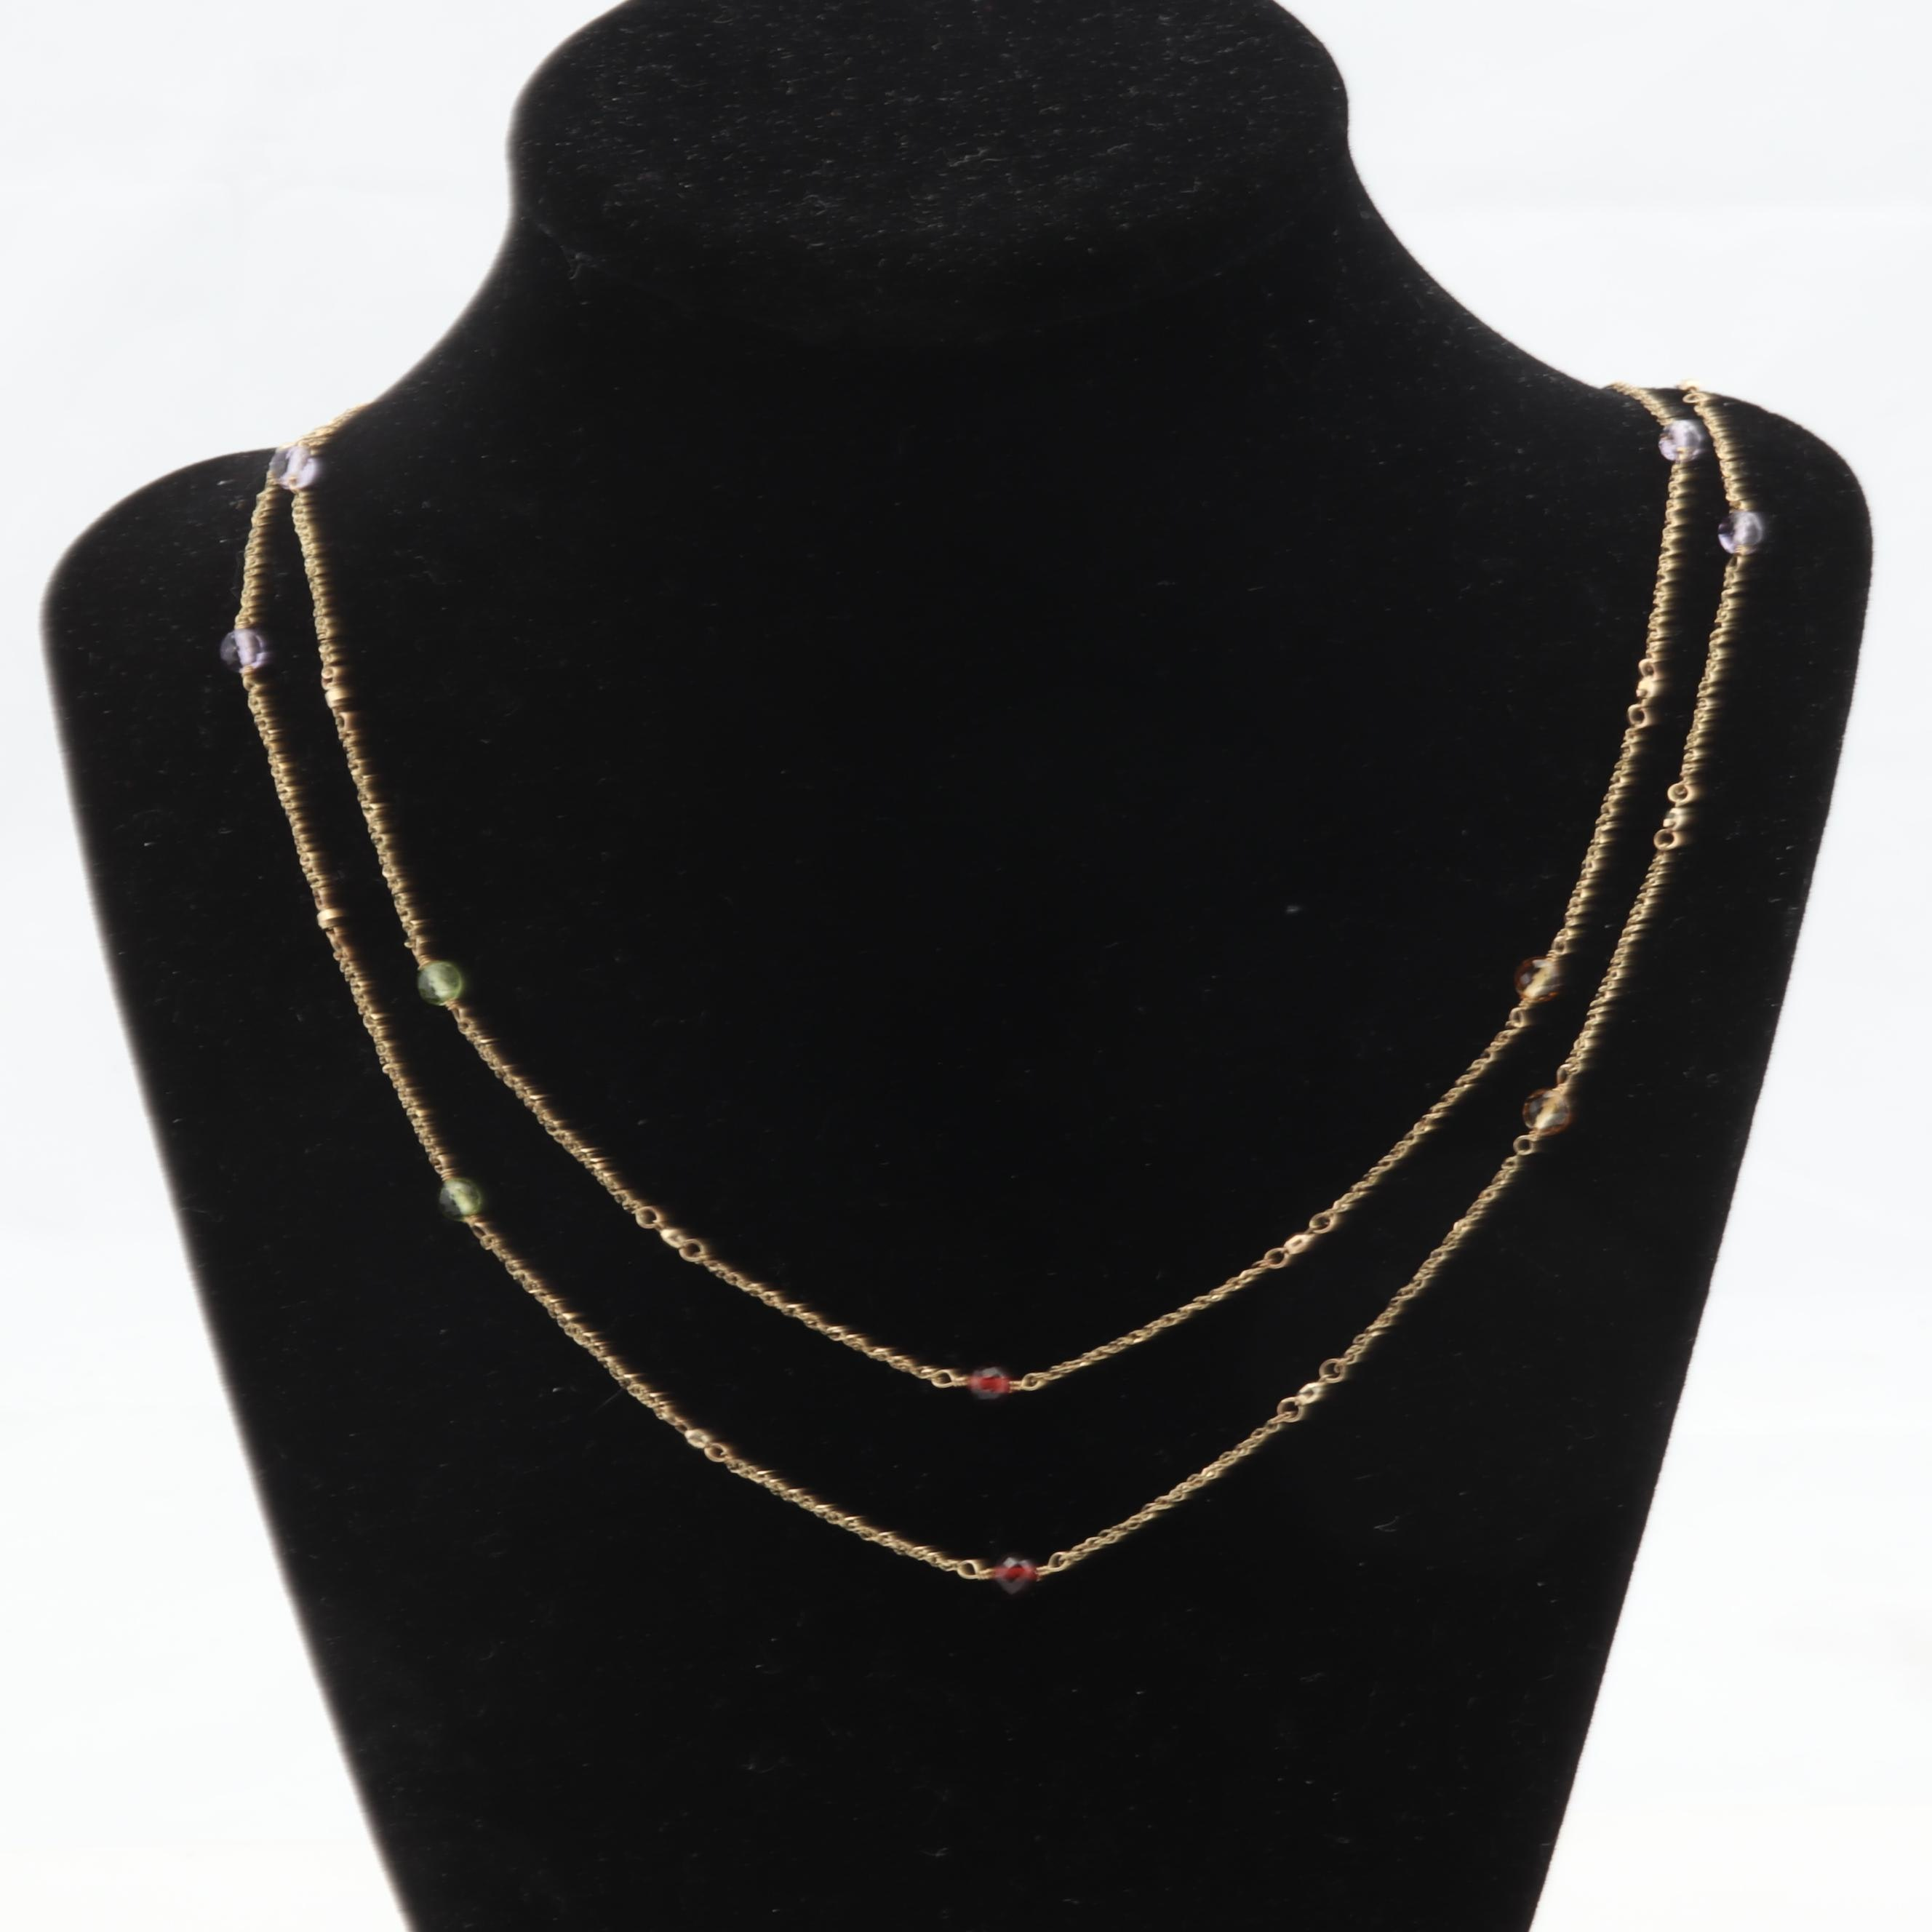 14K Yellow Gold Amethyst, Garnet, Citrine and Green Tourmaline Necklace